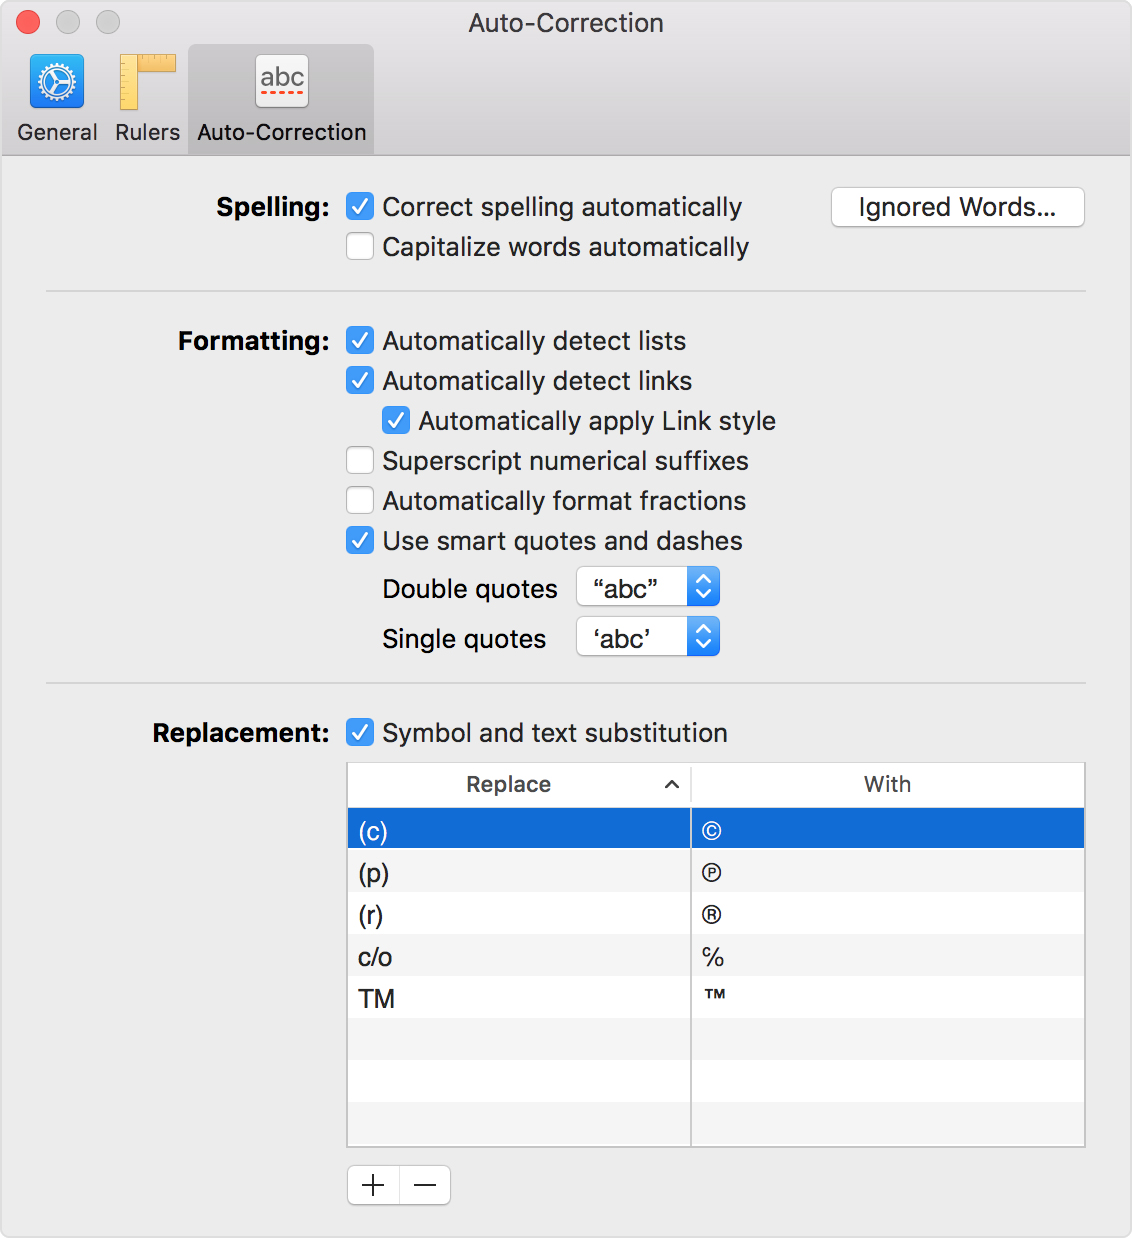 macos-pages7-preferences-auto-correction-replace-wise-tech-labs